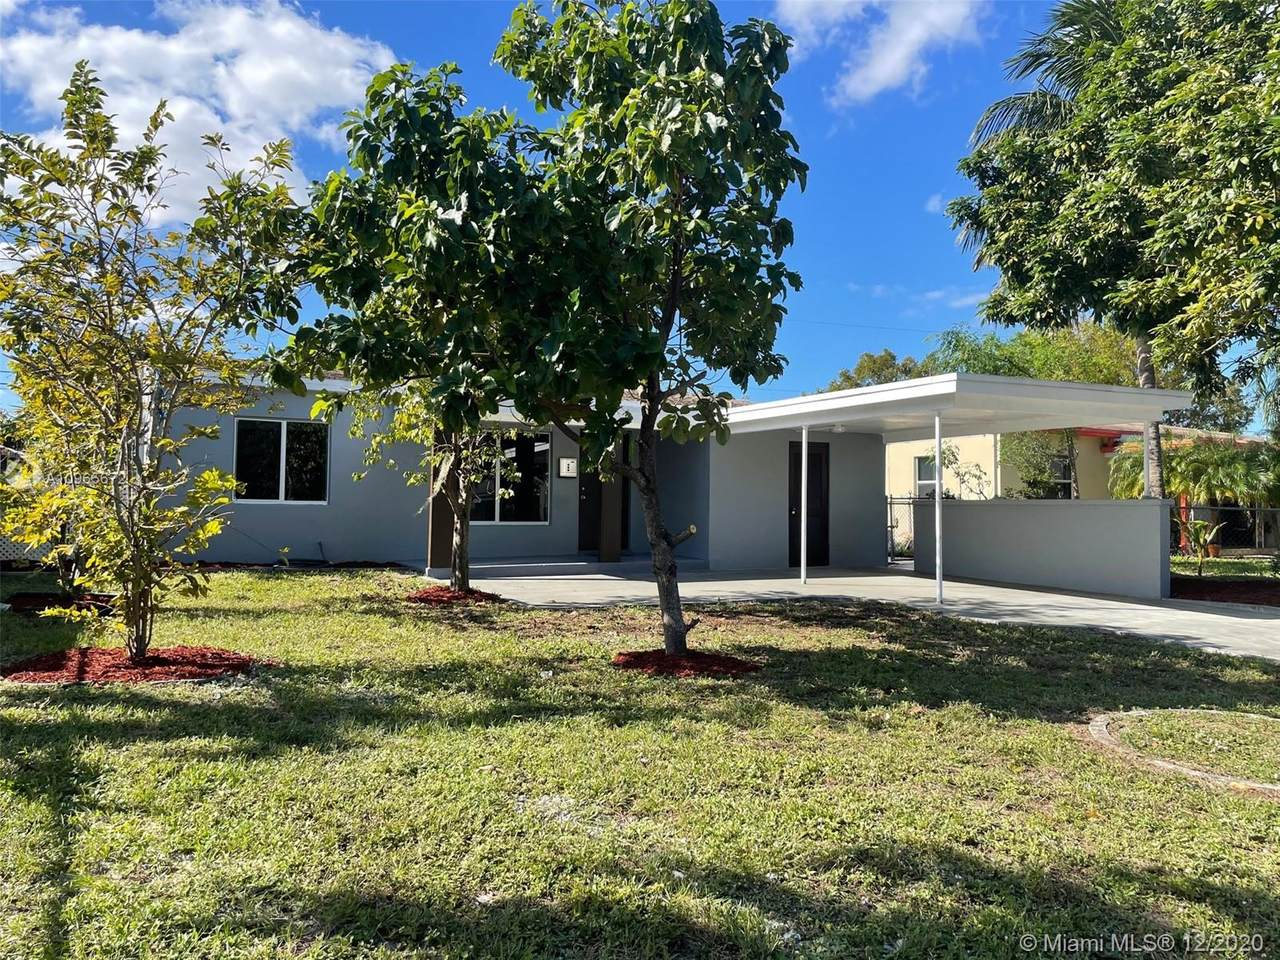 5317 5th Ave - Photo 1